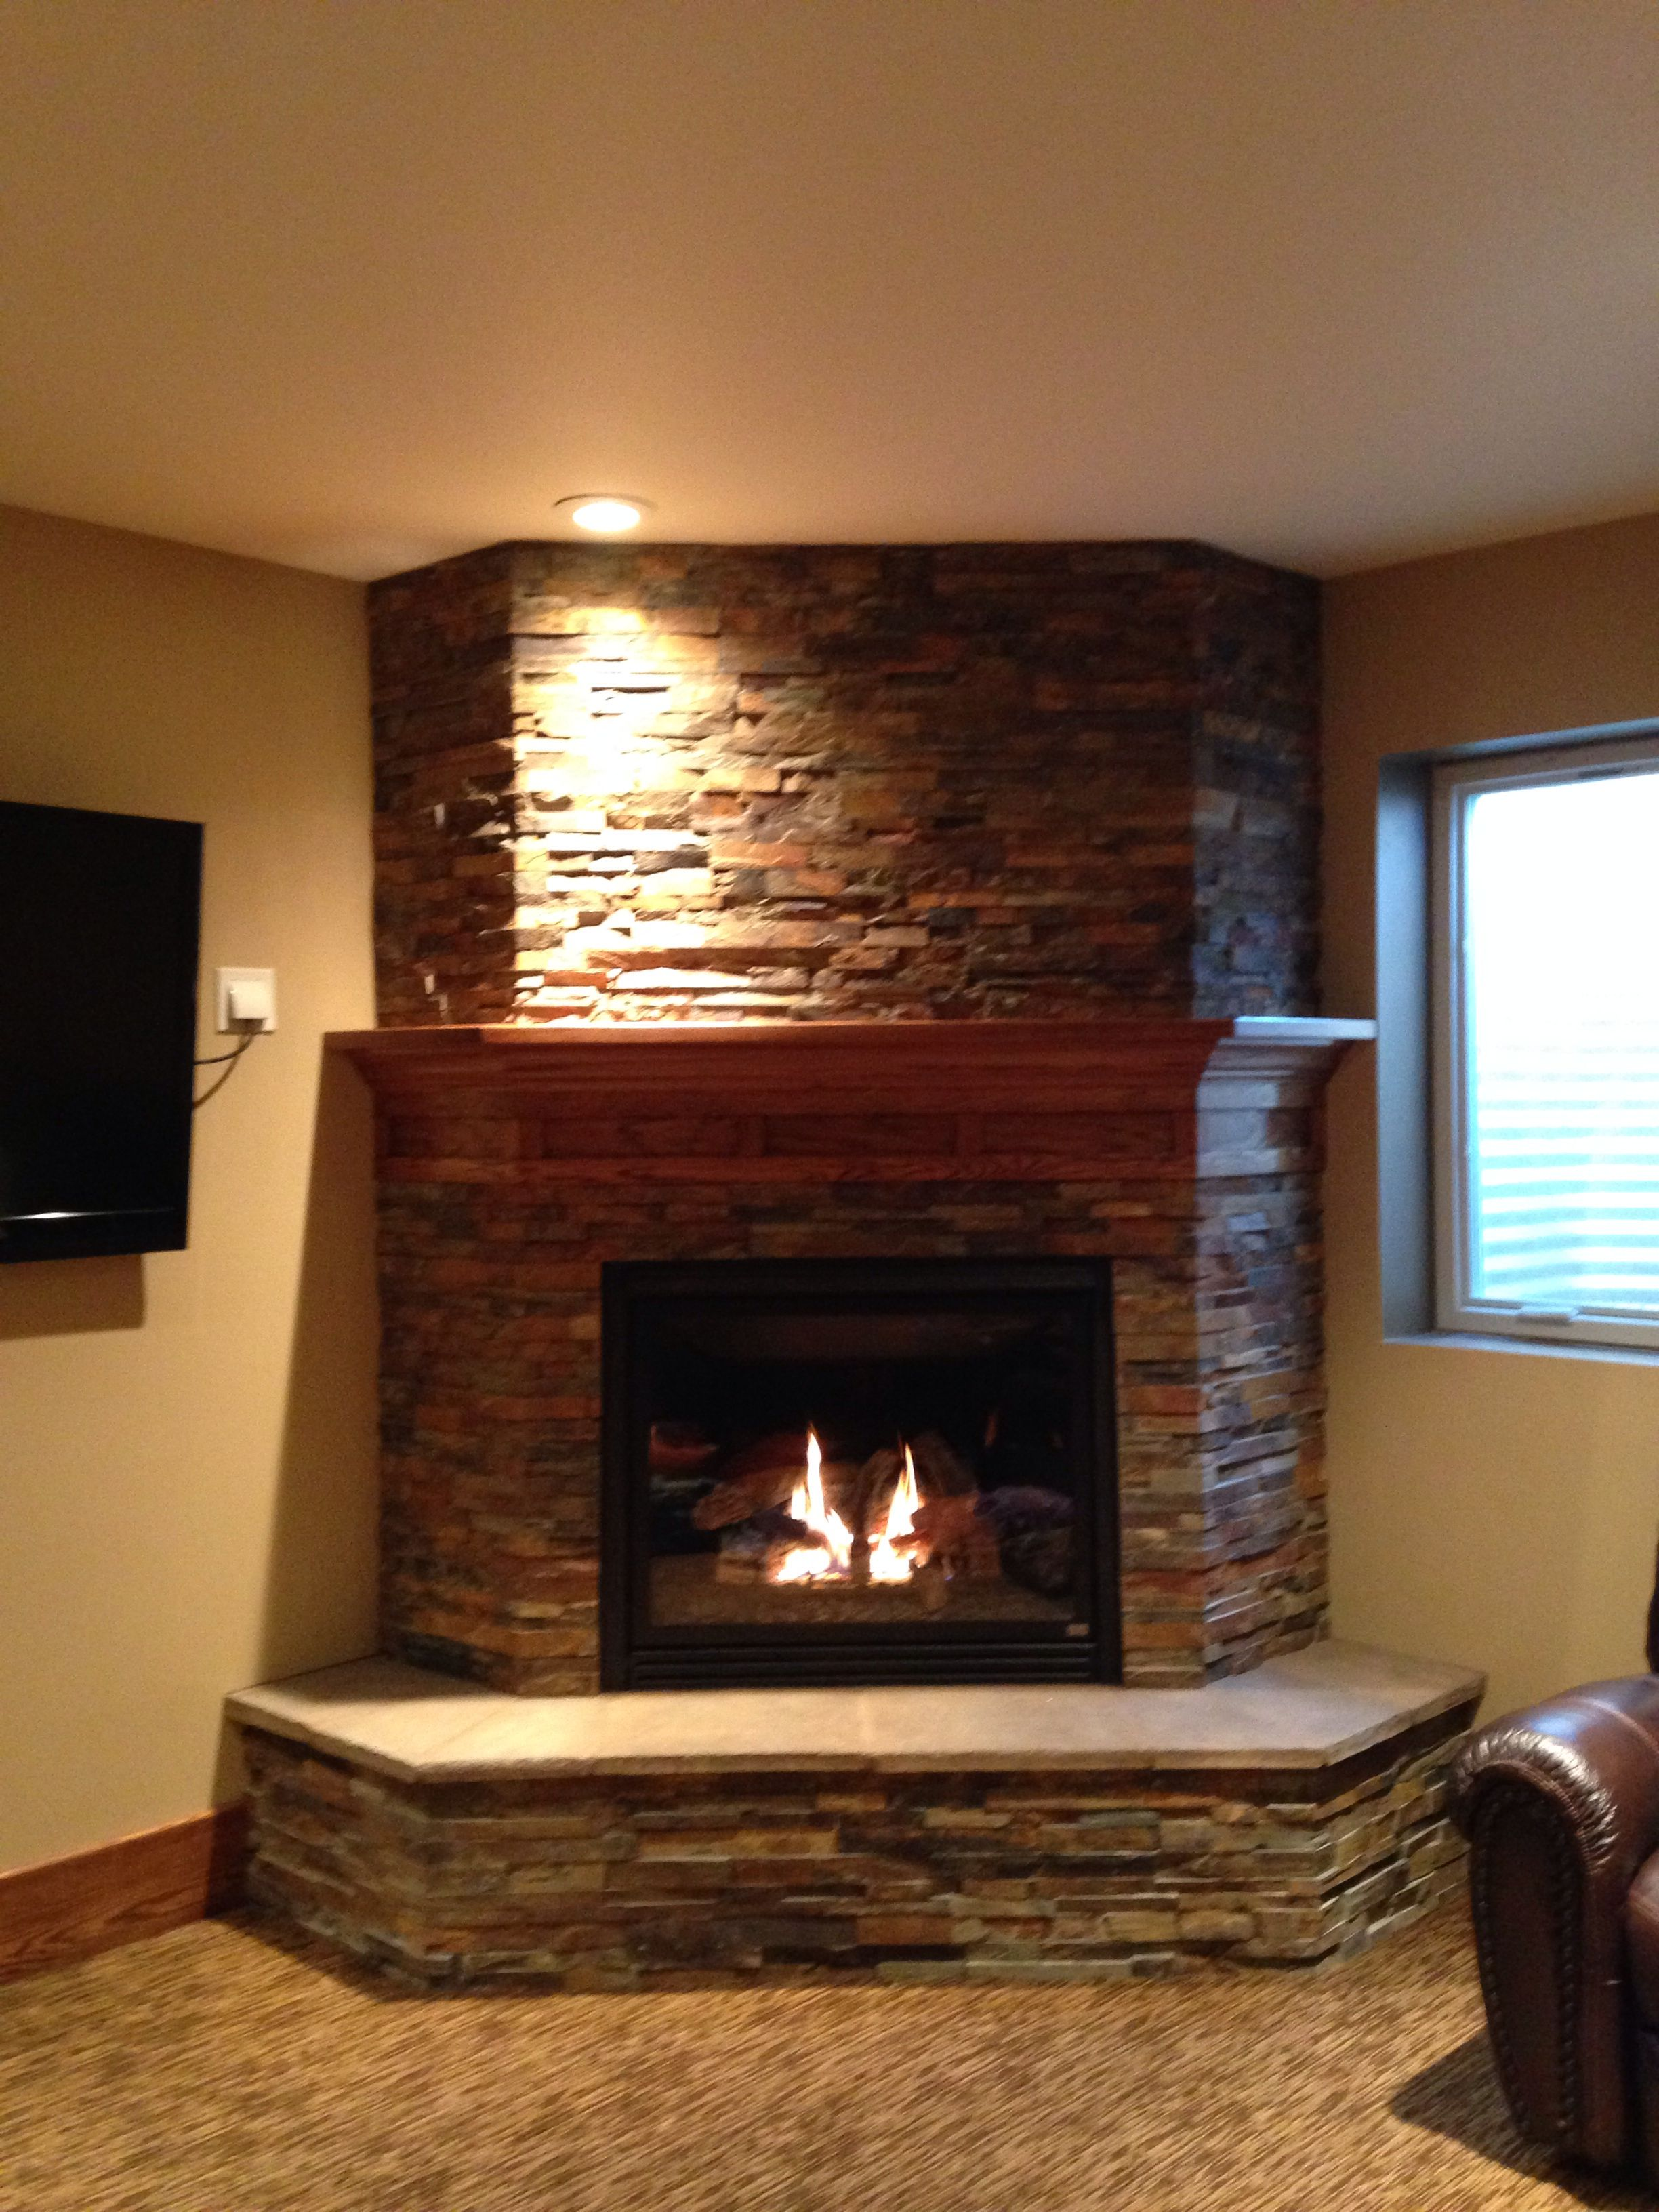 Basement Fireplace Ideas Basement Fireplace Like The Idea Of The 3 Sides To Give